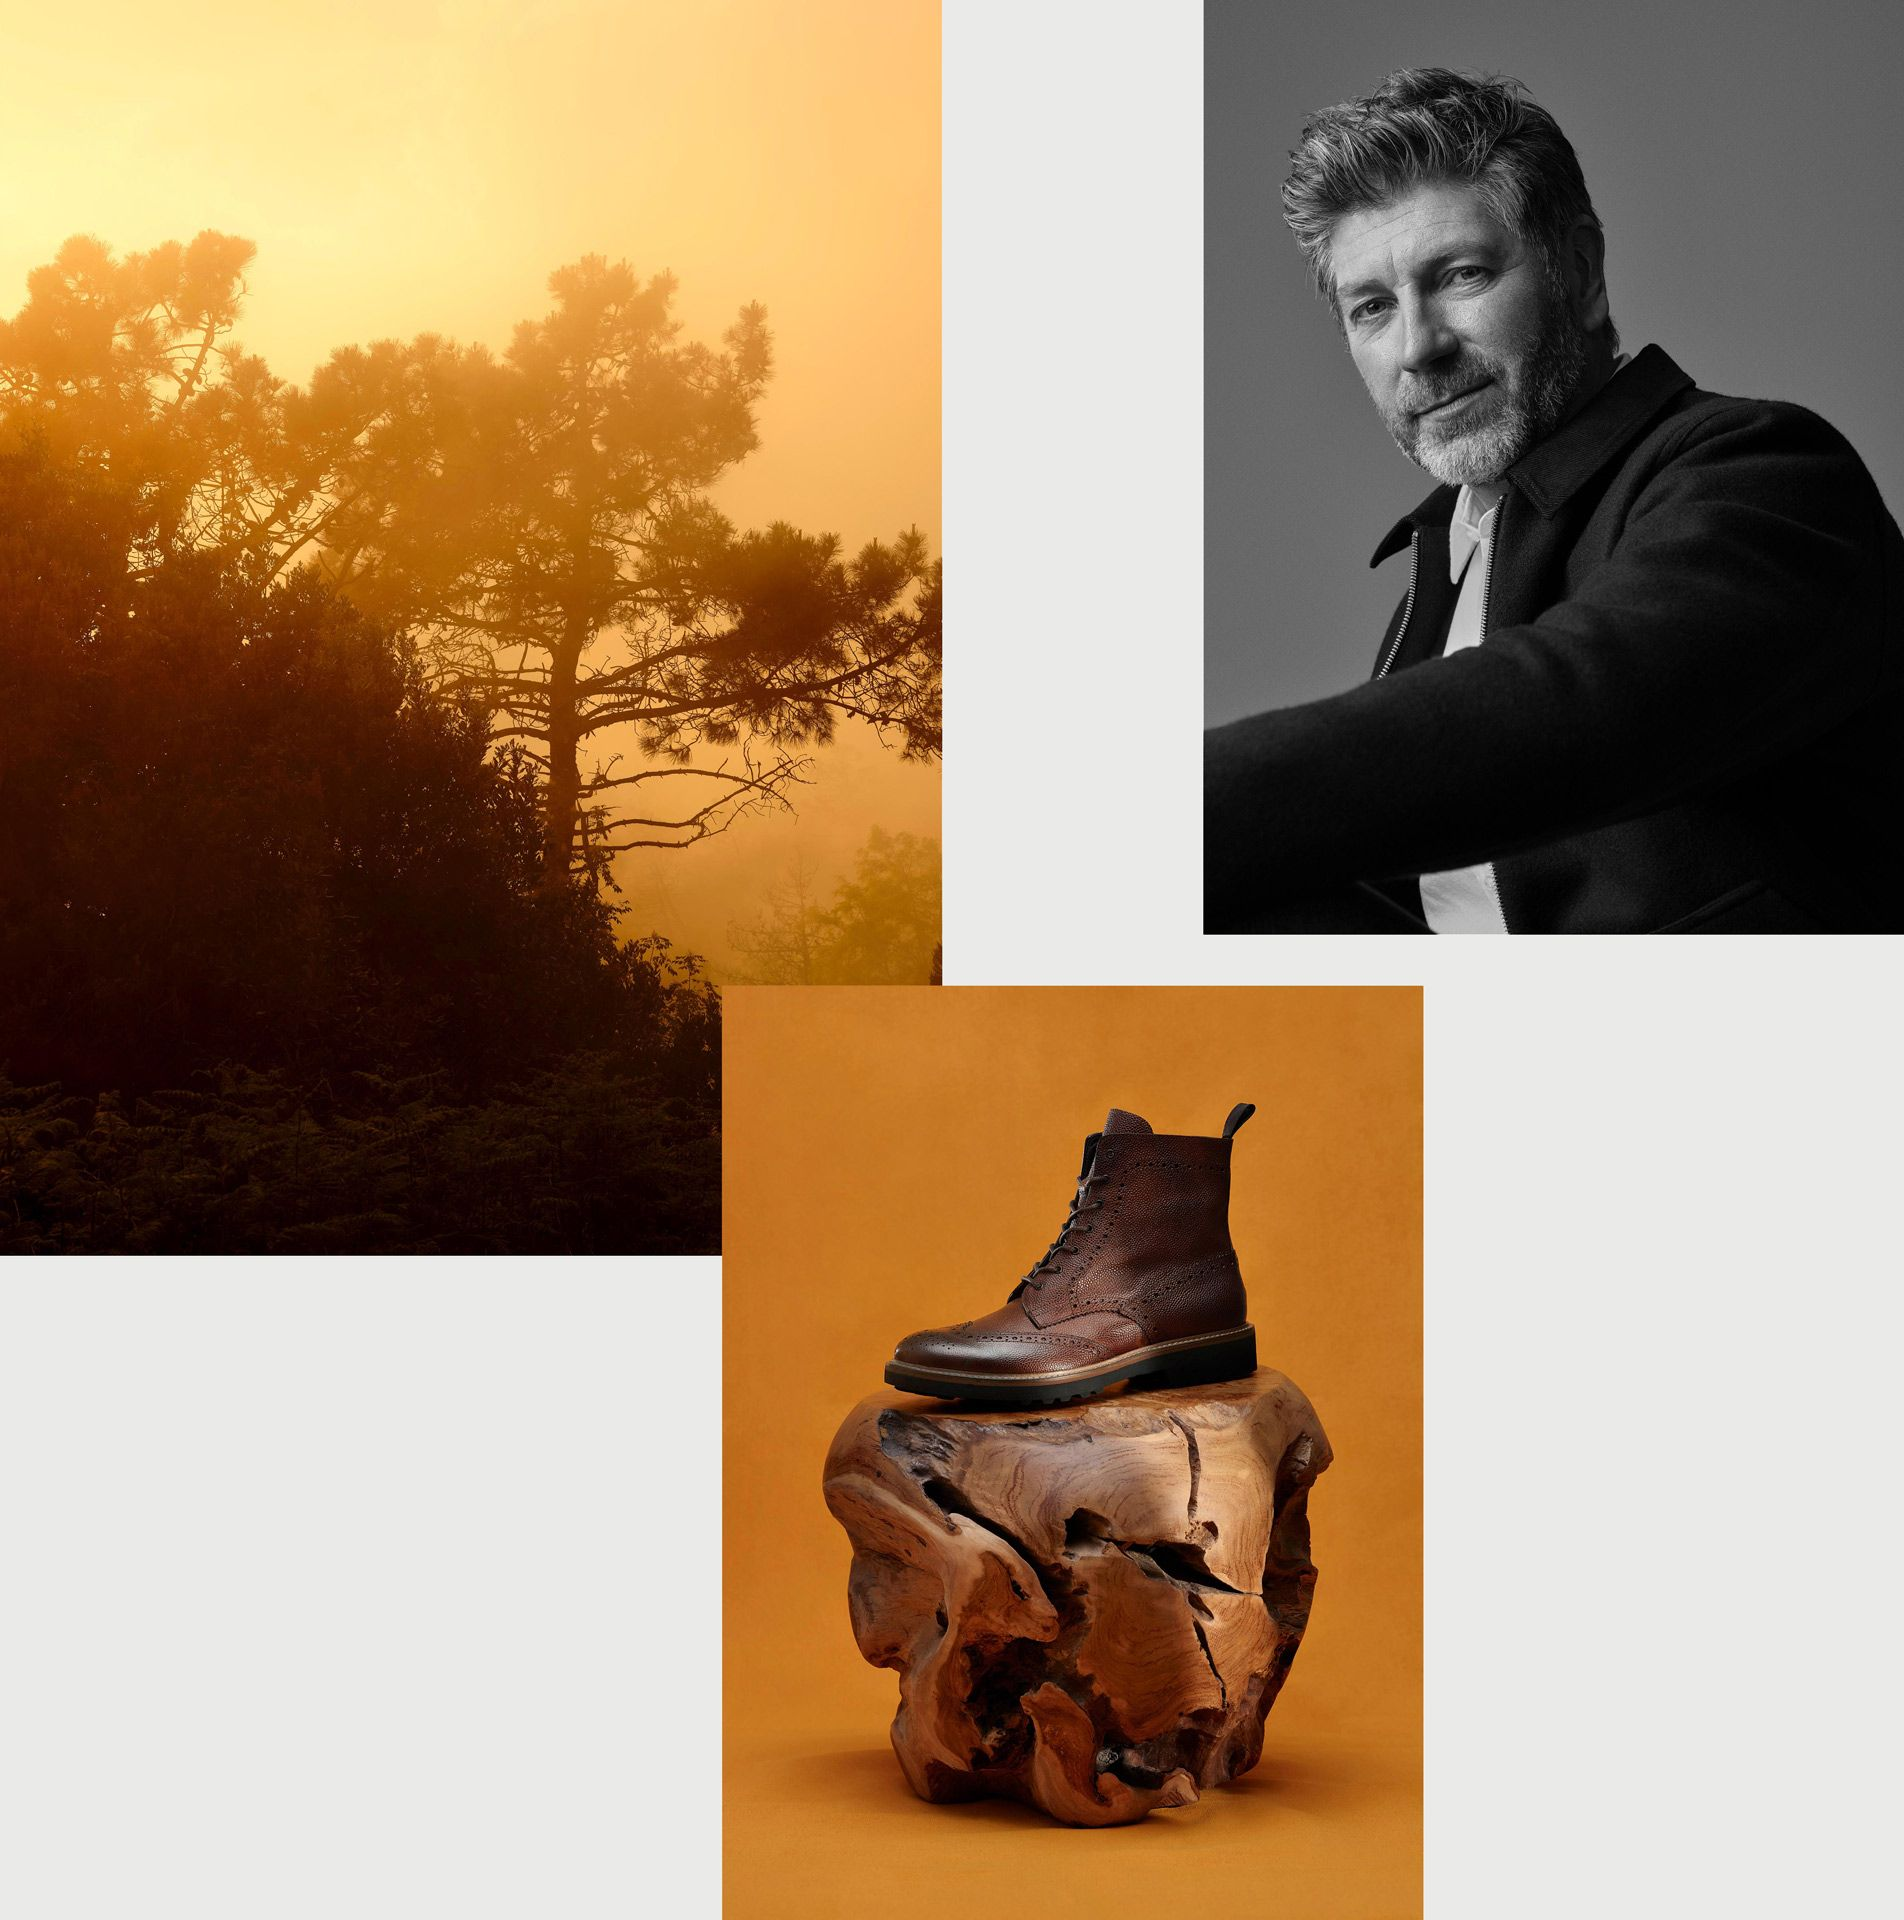 montage of middle aged male model smiling with sunset over trees and picture of brown textured leather boot on chunk of polished wood on yellow-orange background all by Maxyme G Delisle with artistic direction from Studio TB for Jean-Paul Fortin Fall collection